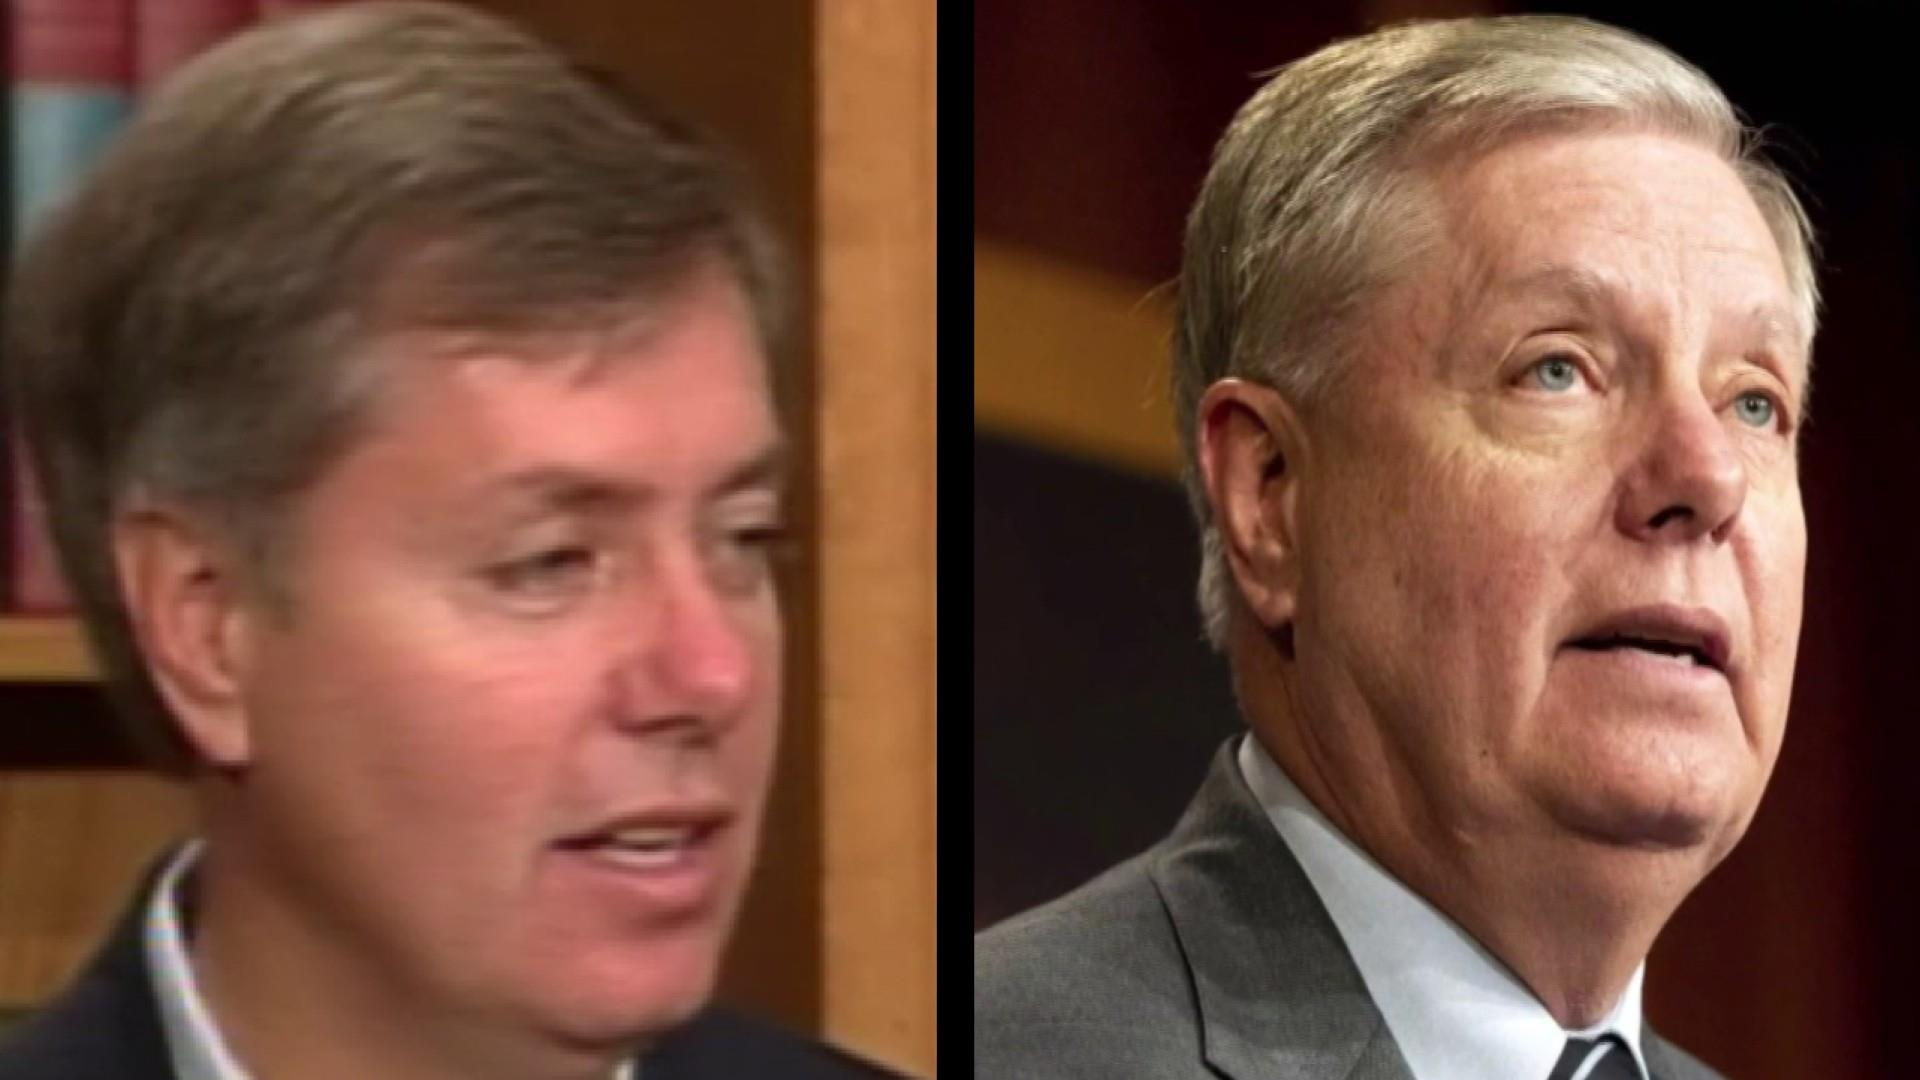 Lindsey Graham on impeachment (in 1998): Let the facts to the talking